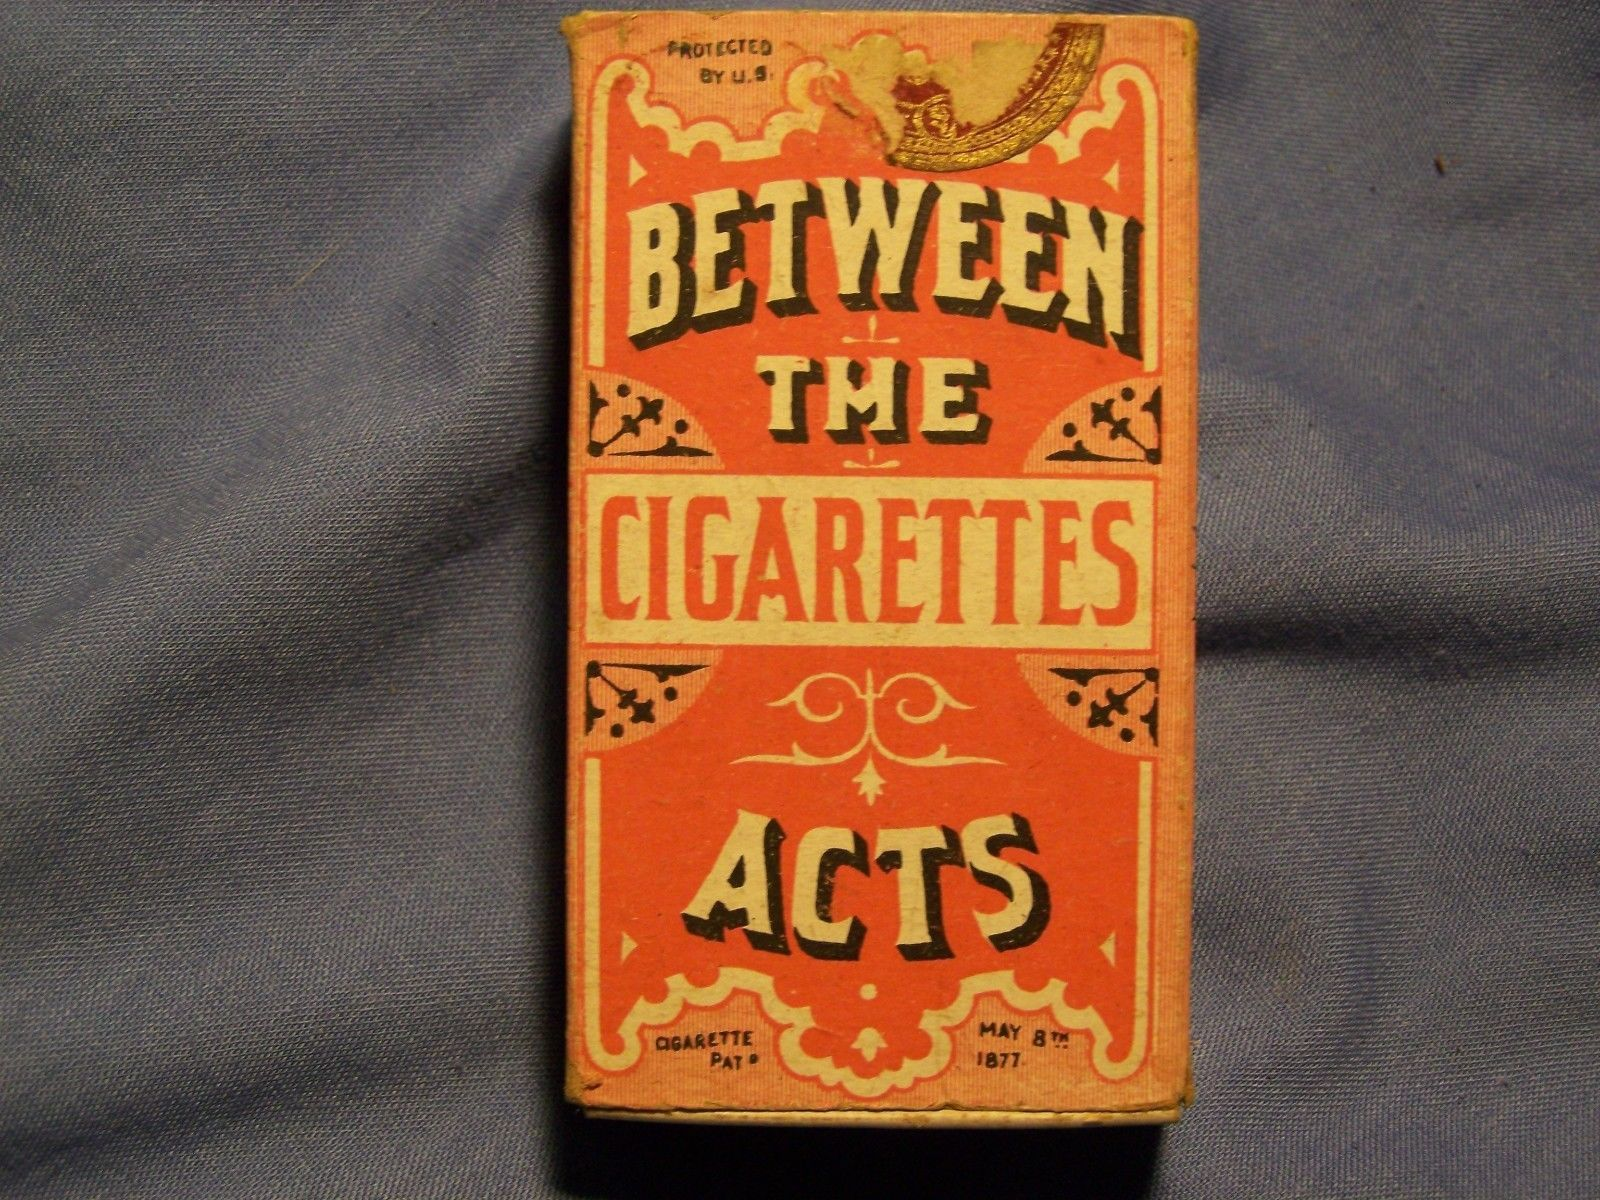 VINTAGE ORIGINAL 1883 BETWEEN THE ACTS CIGARETTE BOX VERY NICE COMPLETE BOX | eBay